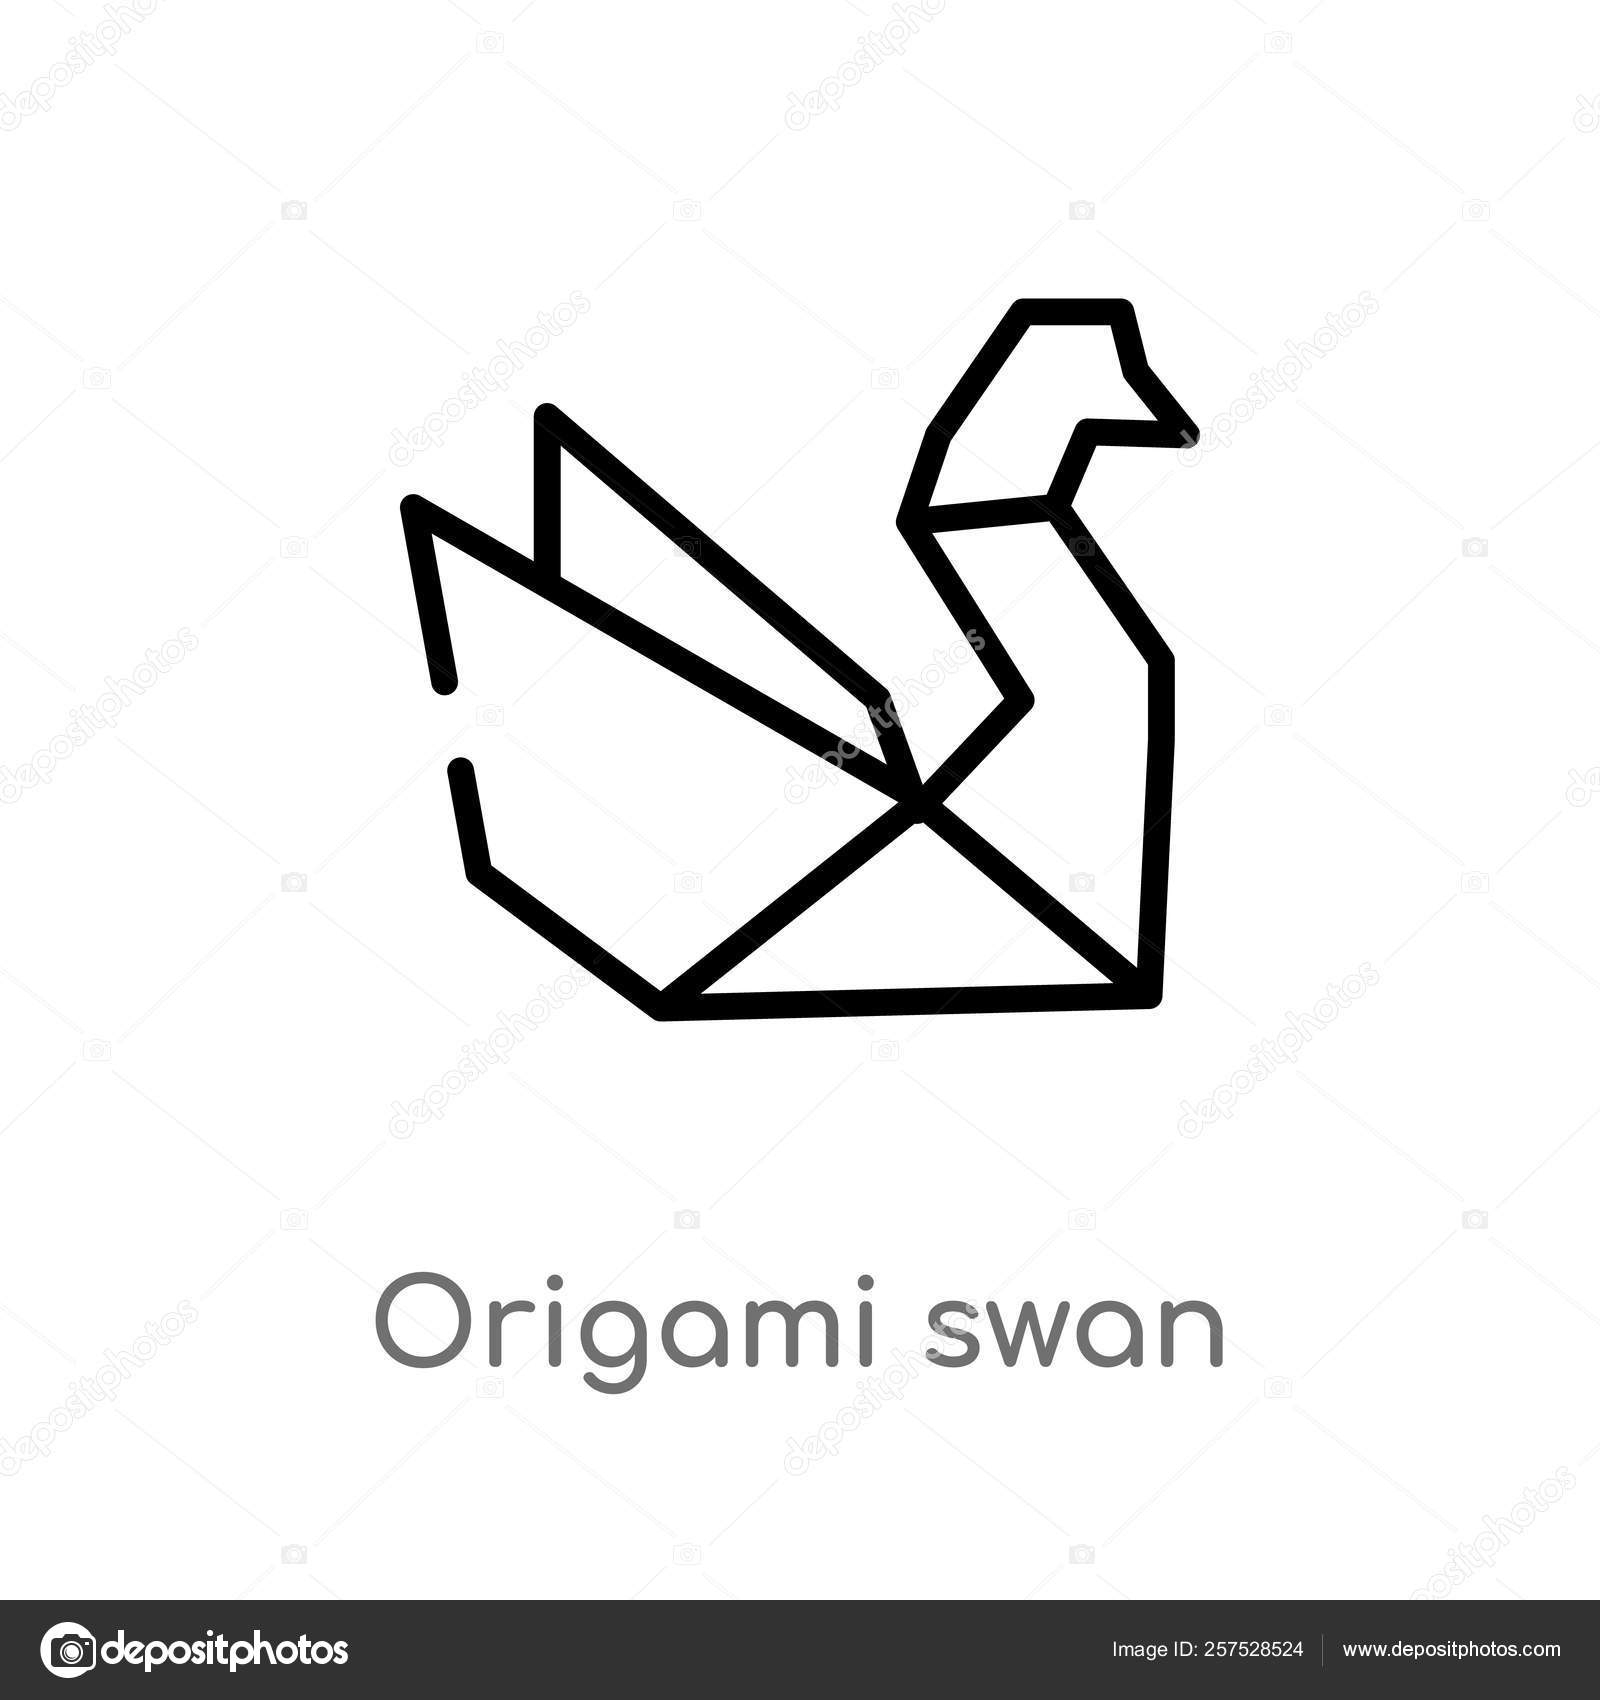 How To Origami Swan Outline Origami Swan Vector Icon Isolated Black Simple Line Element